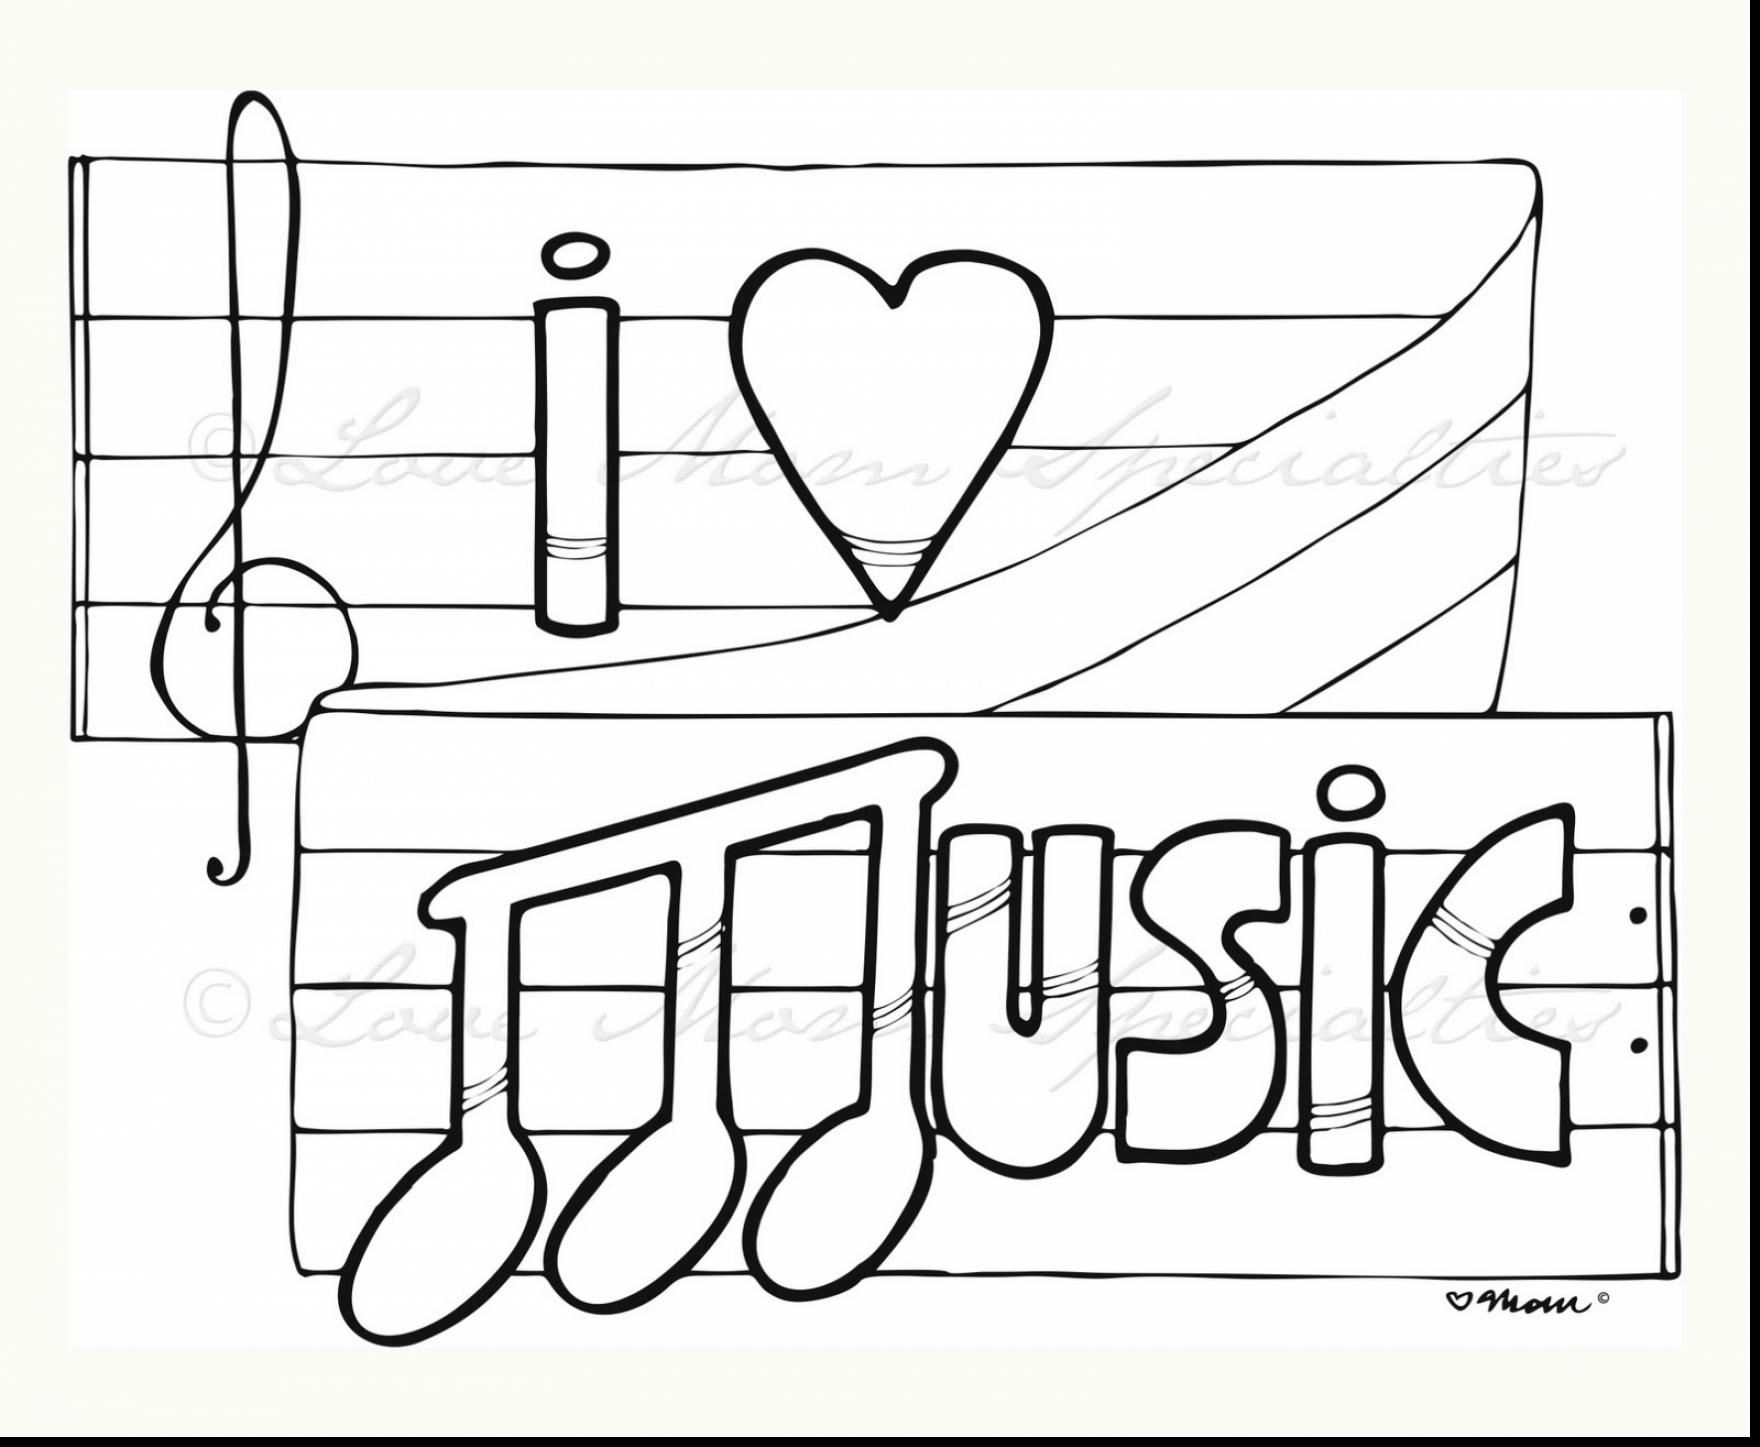 Challenge Music Notes Coloring Pages Printable Note for Kids at to Print Of Coloring Pages Music Notes Bold Free Learning Fun Note Adult Download